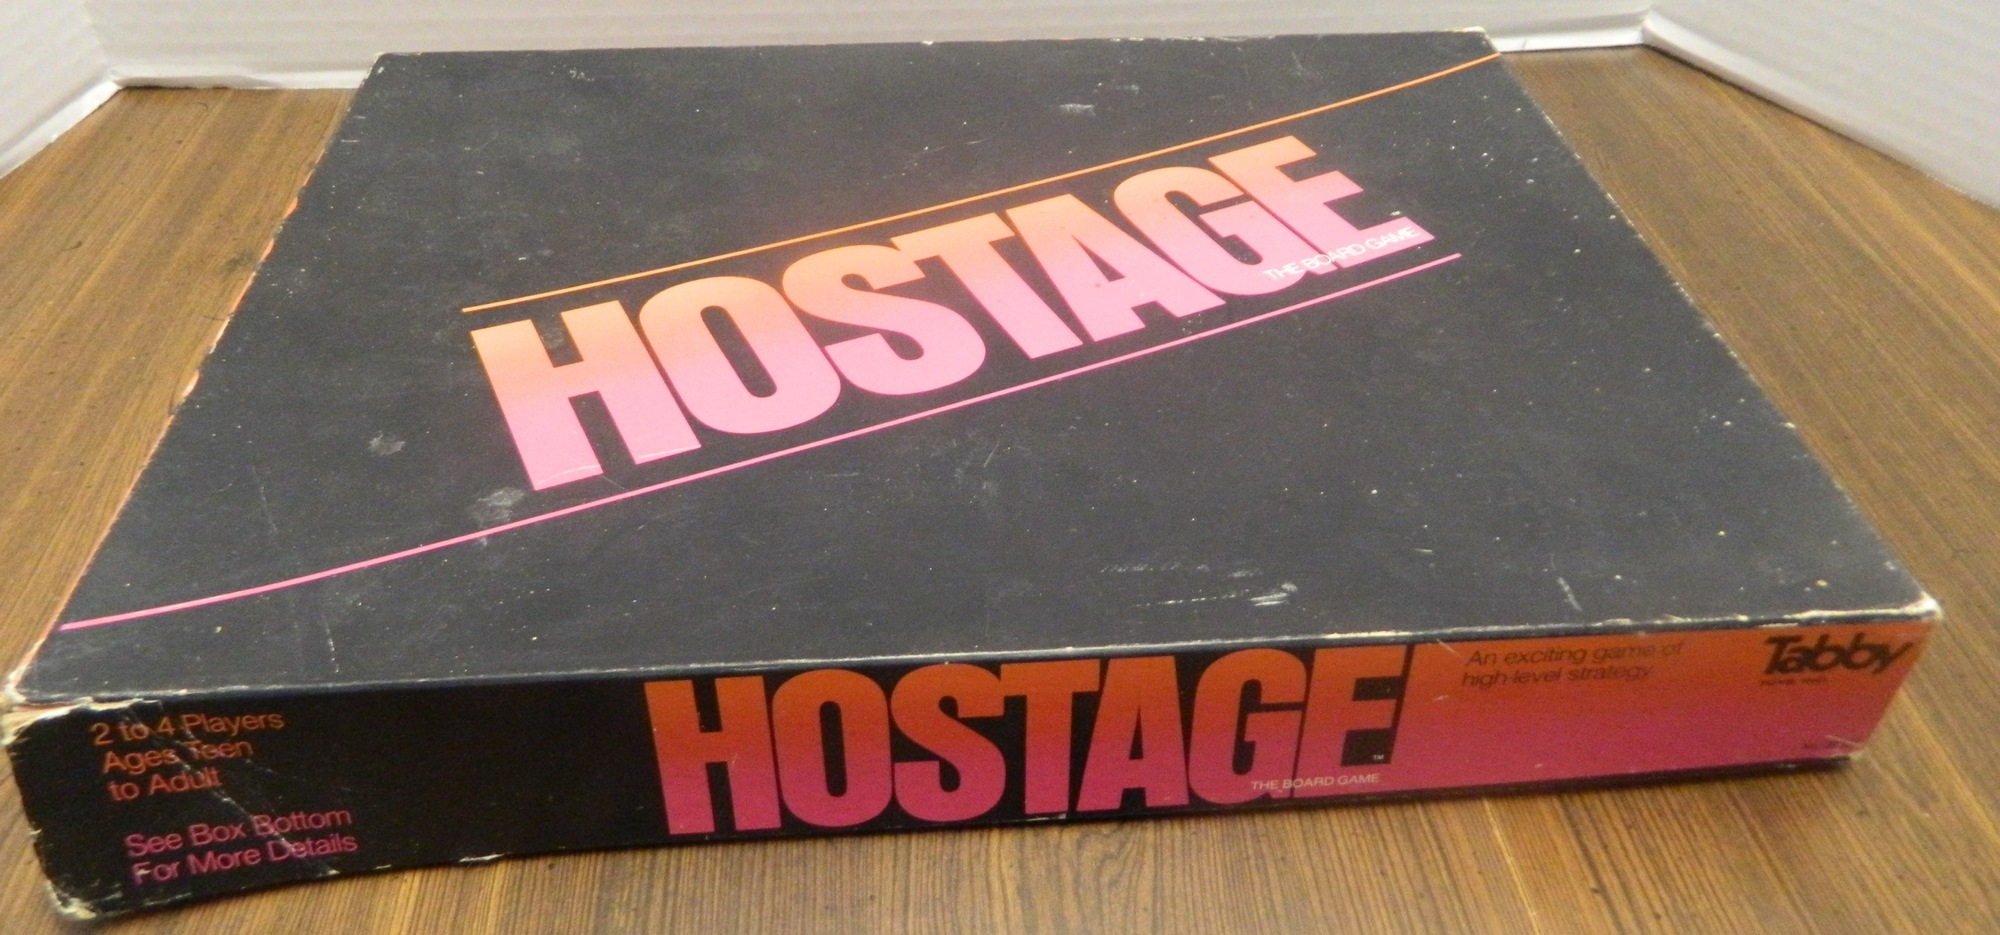 Hostage the Board Game Box